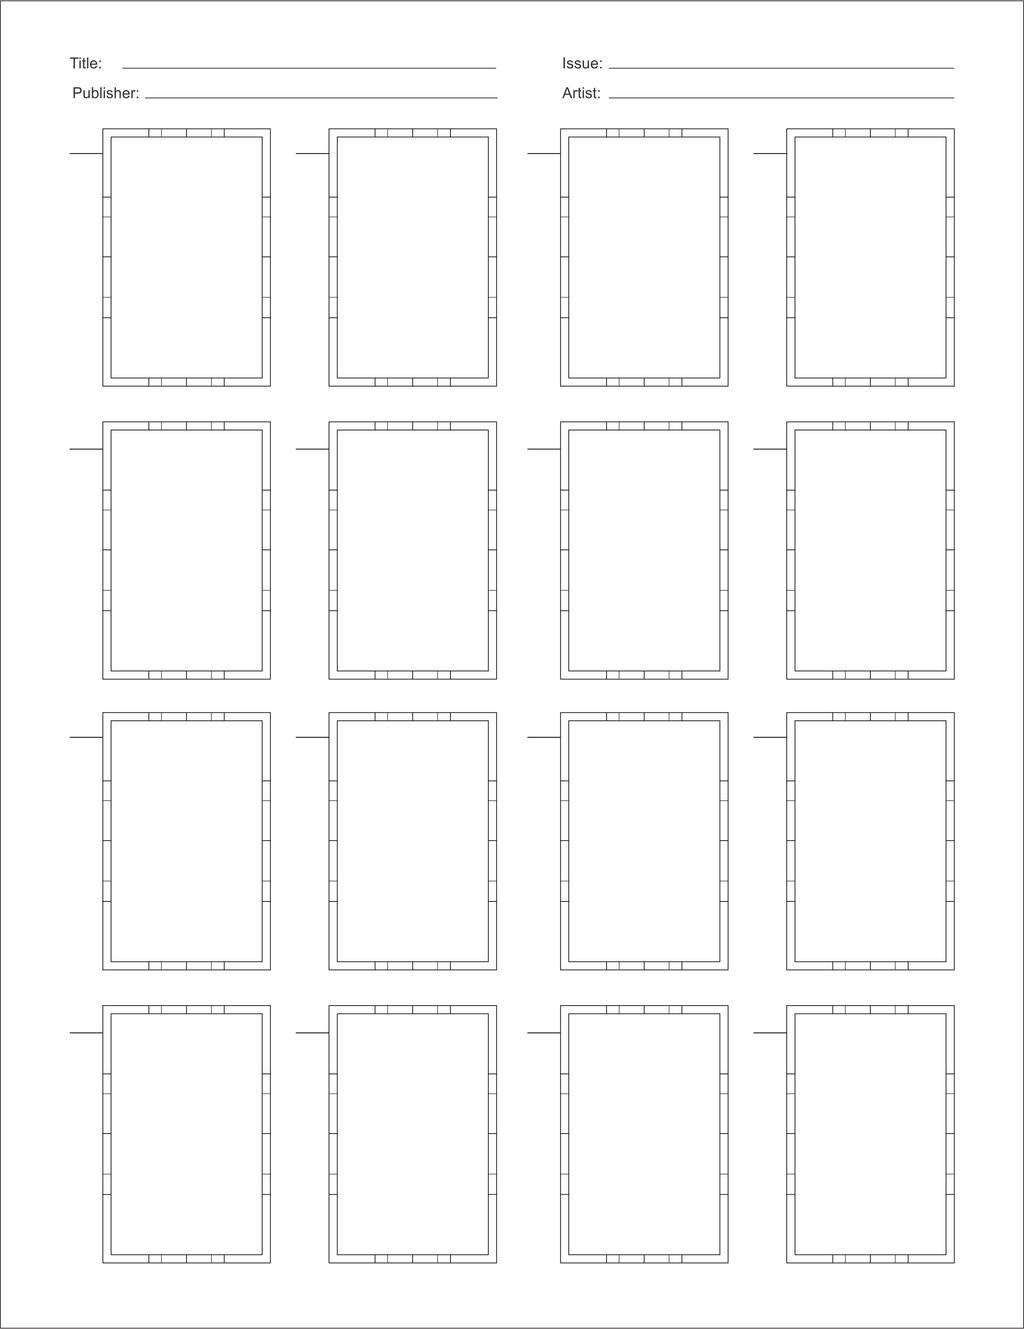 Comic Book Character Design Template : Comic book thumbnail template by brianatkins on deviantart